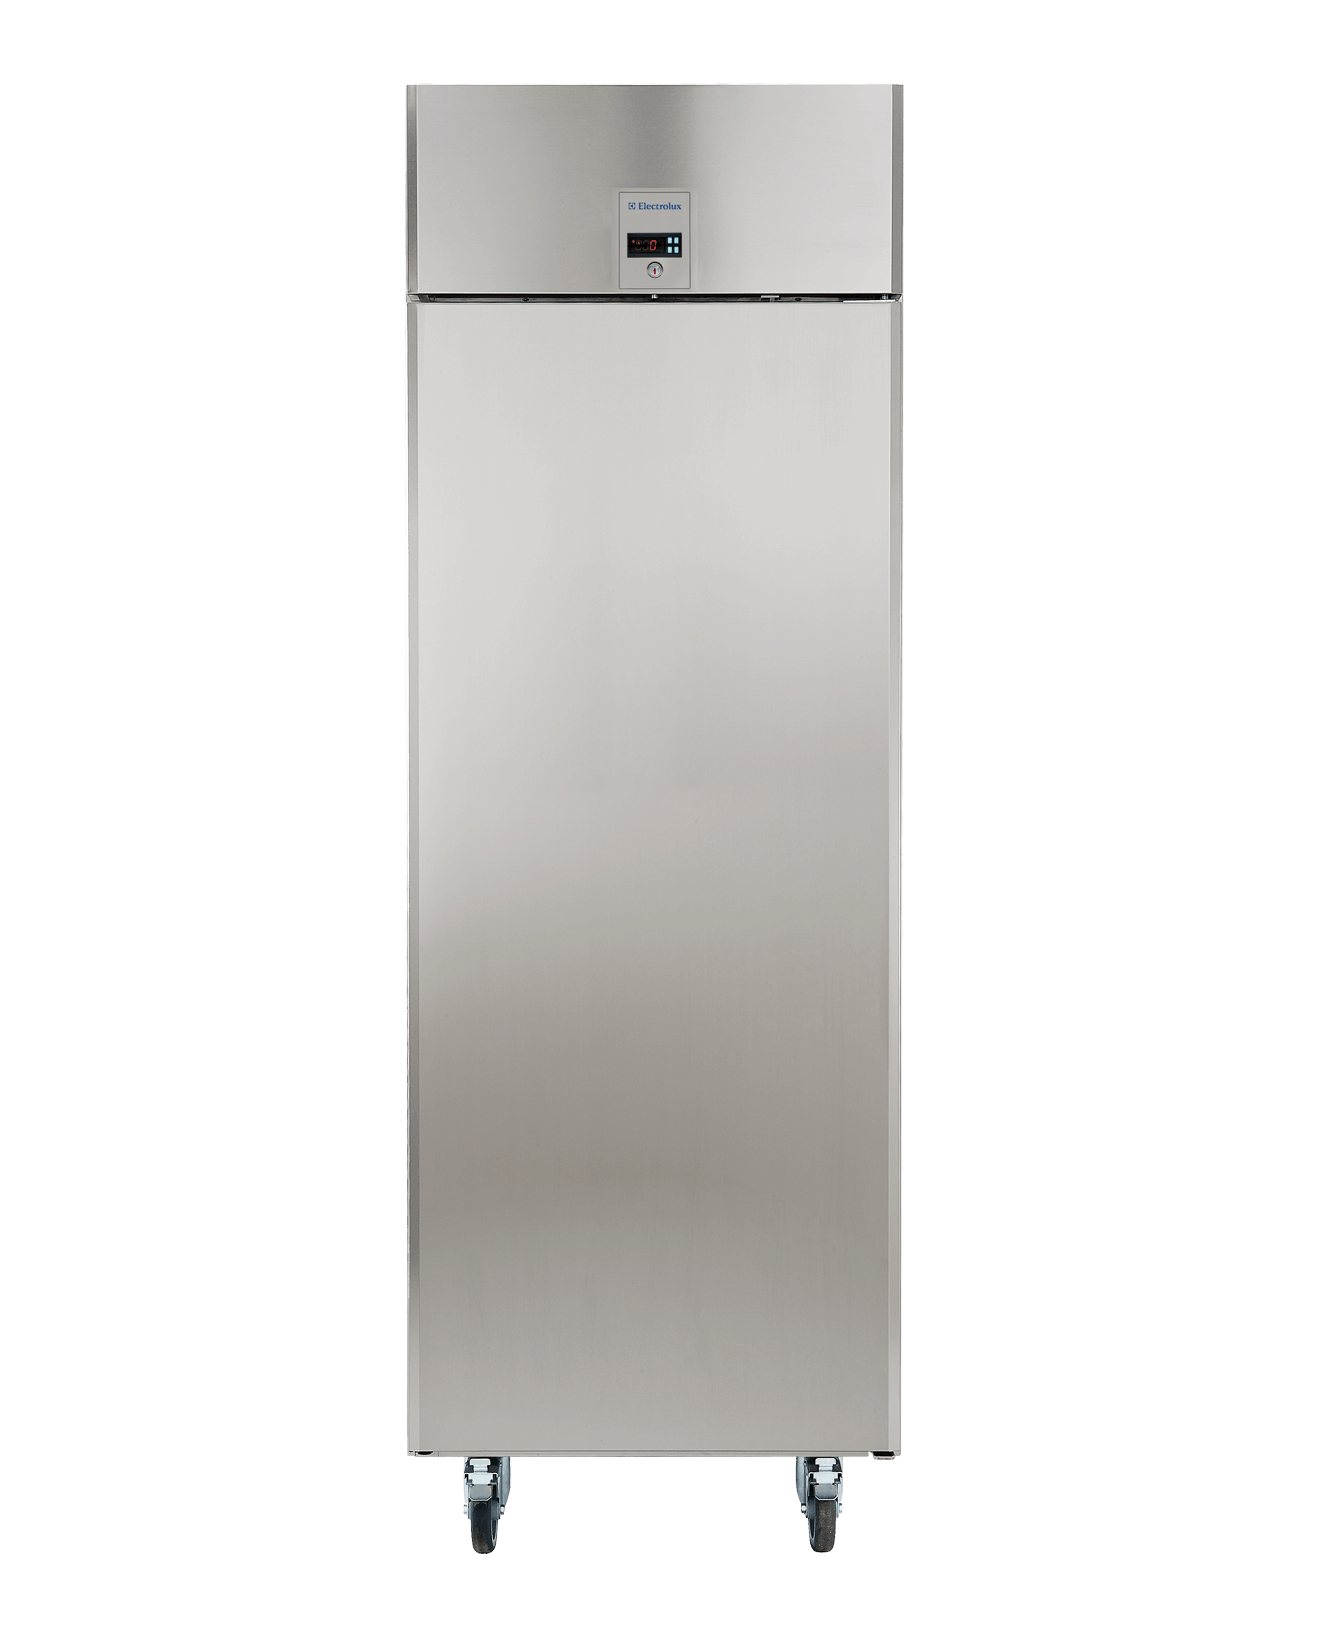 Le Meilleur 1 Door Digital Stainless Steel Freezer The Opl Group Ce Mois Ci